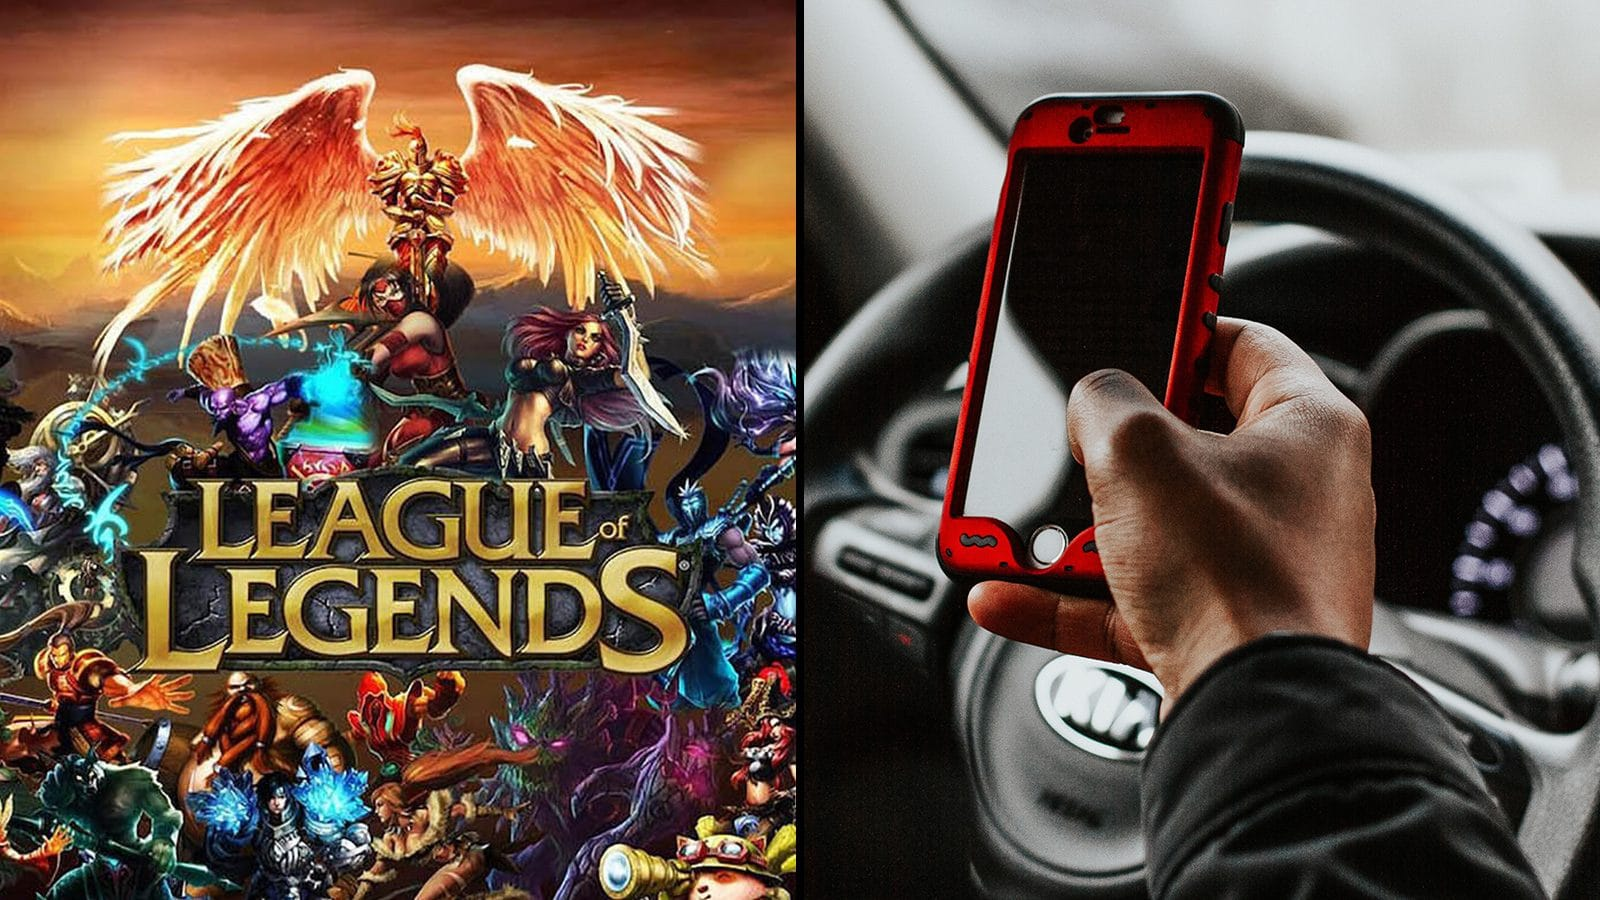 league-of0legends-mobile-game-riot-games-tencent